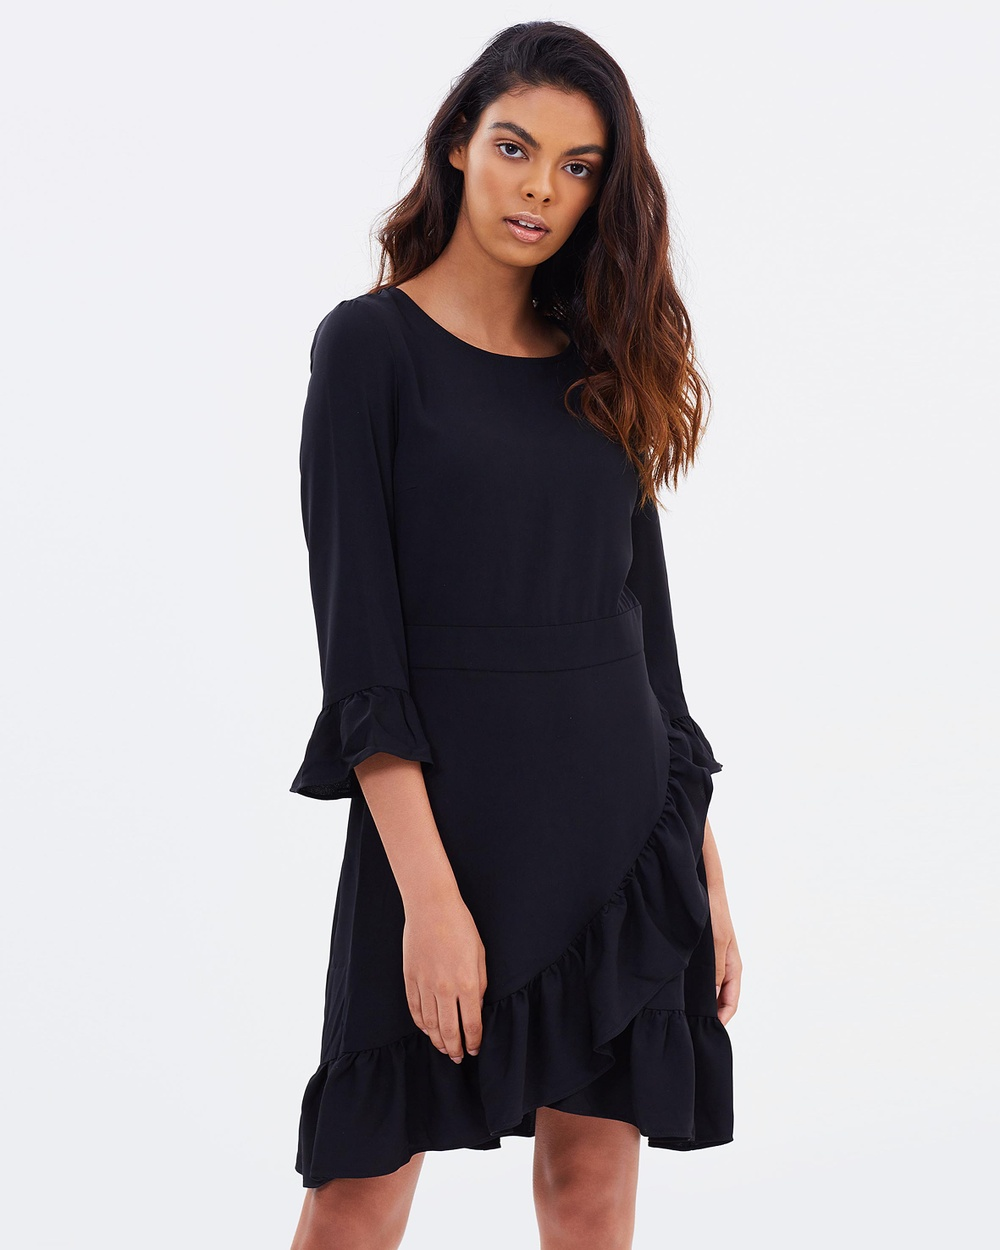 Miss Selfridge 3 4 Sleeve Frill Hem Dress Dresses Black 3-4 Sleeve Frill Hem Dress